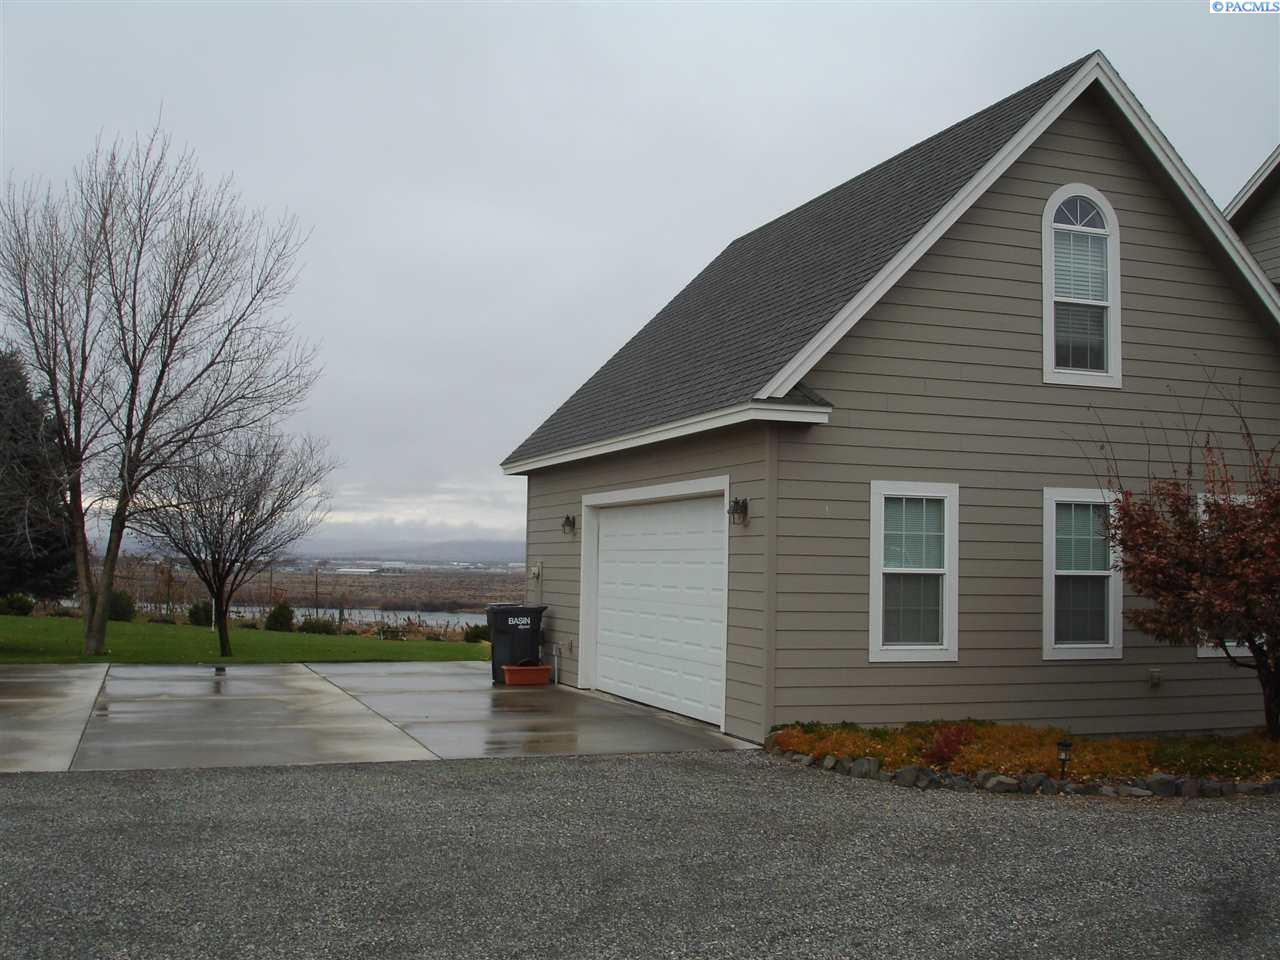 Additional photo for property listing at 290 LARKSPUR Road Pasco, Washington 99301 United States